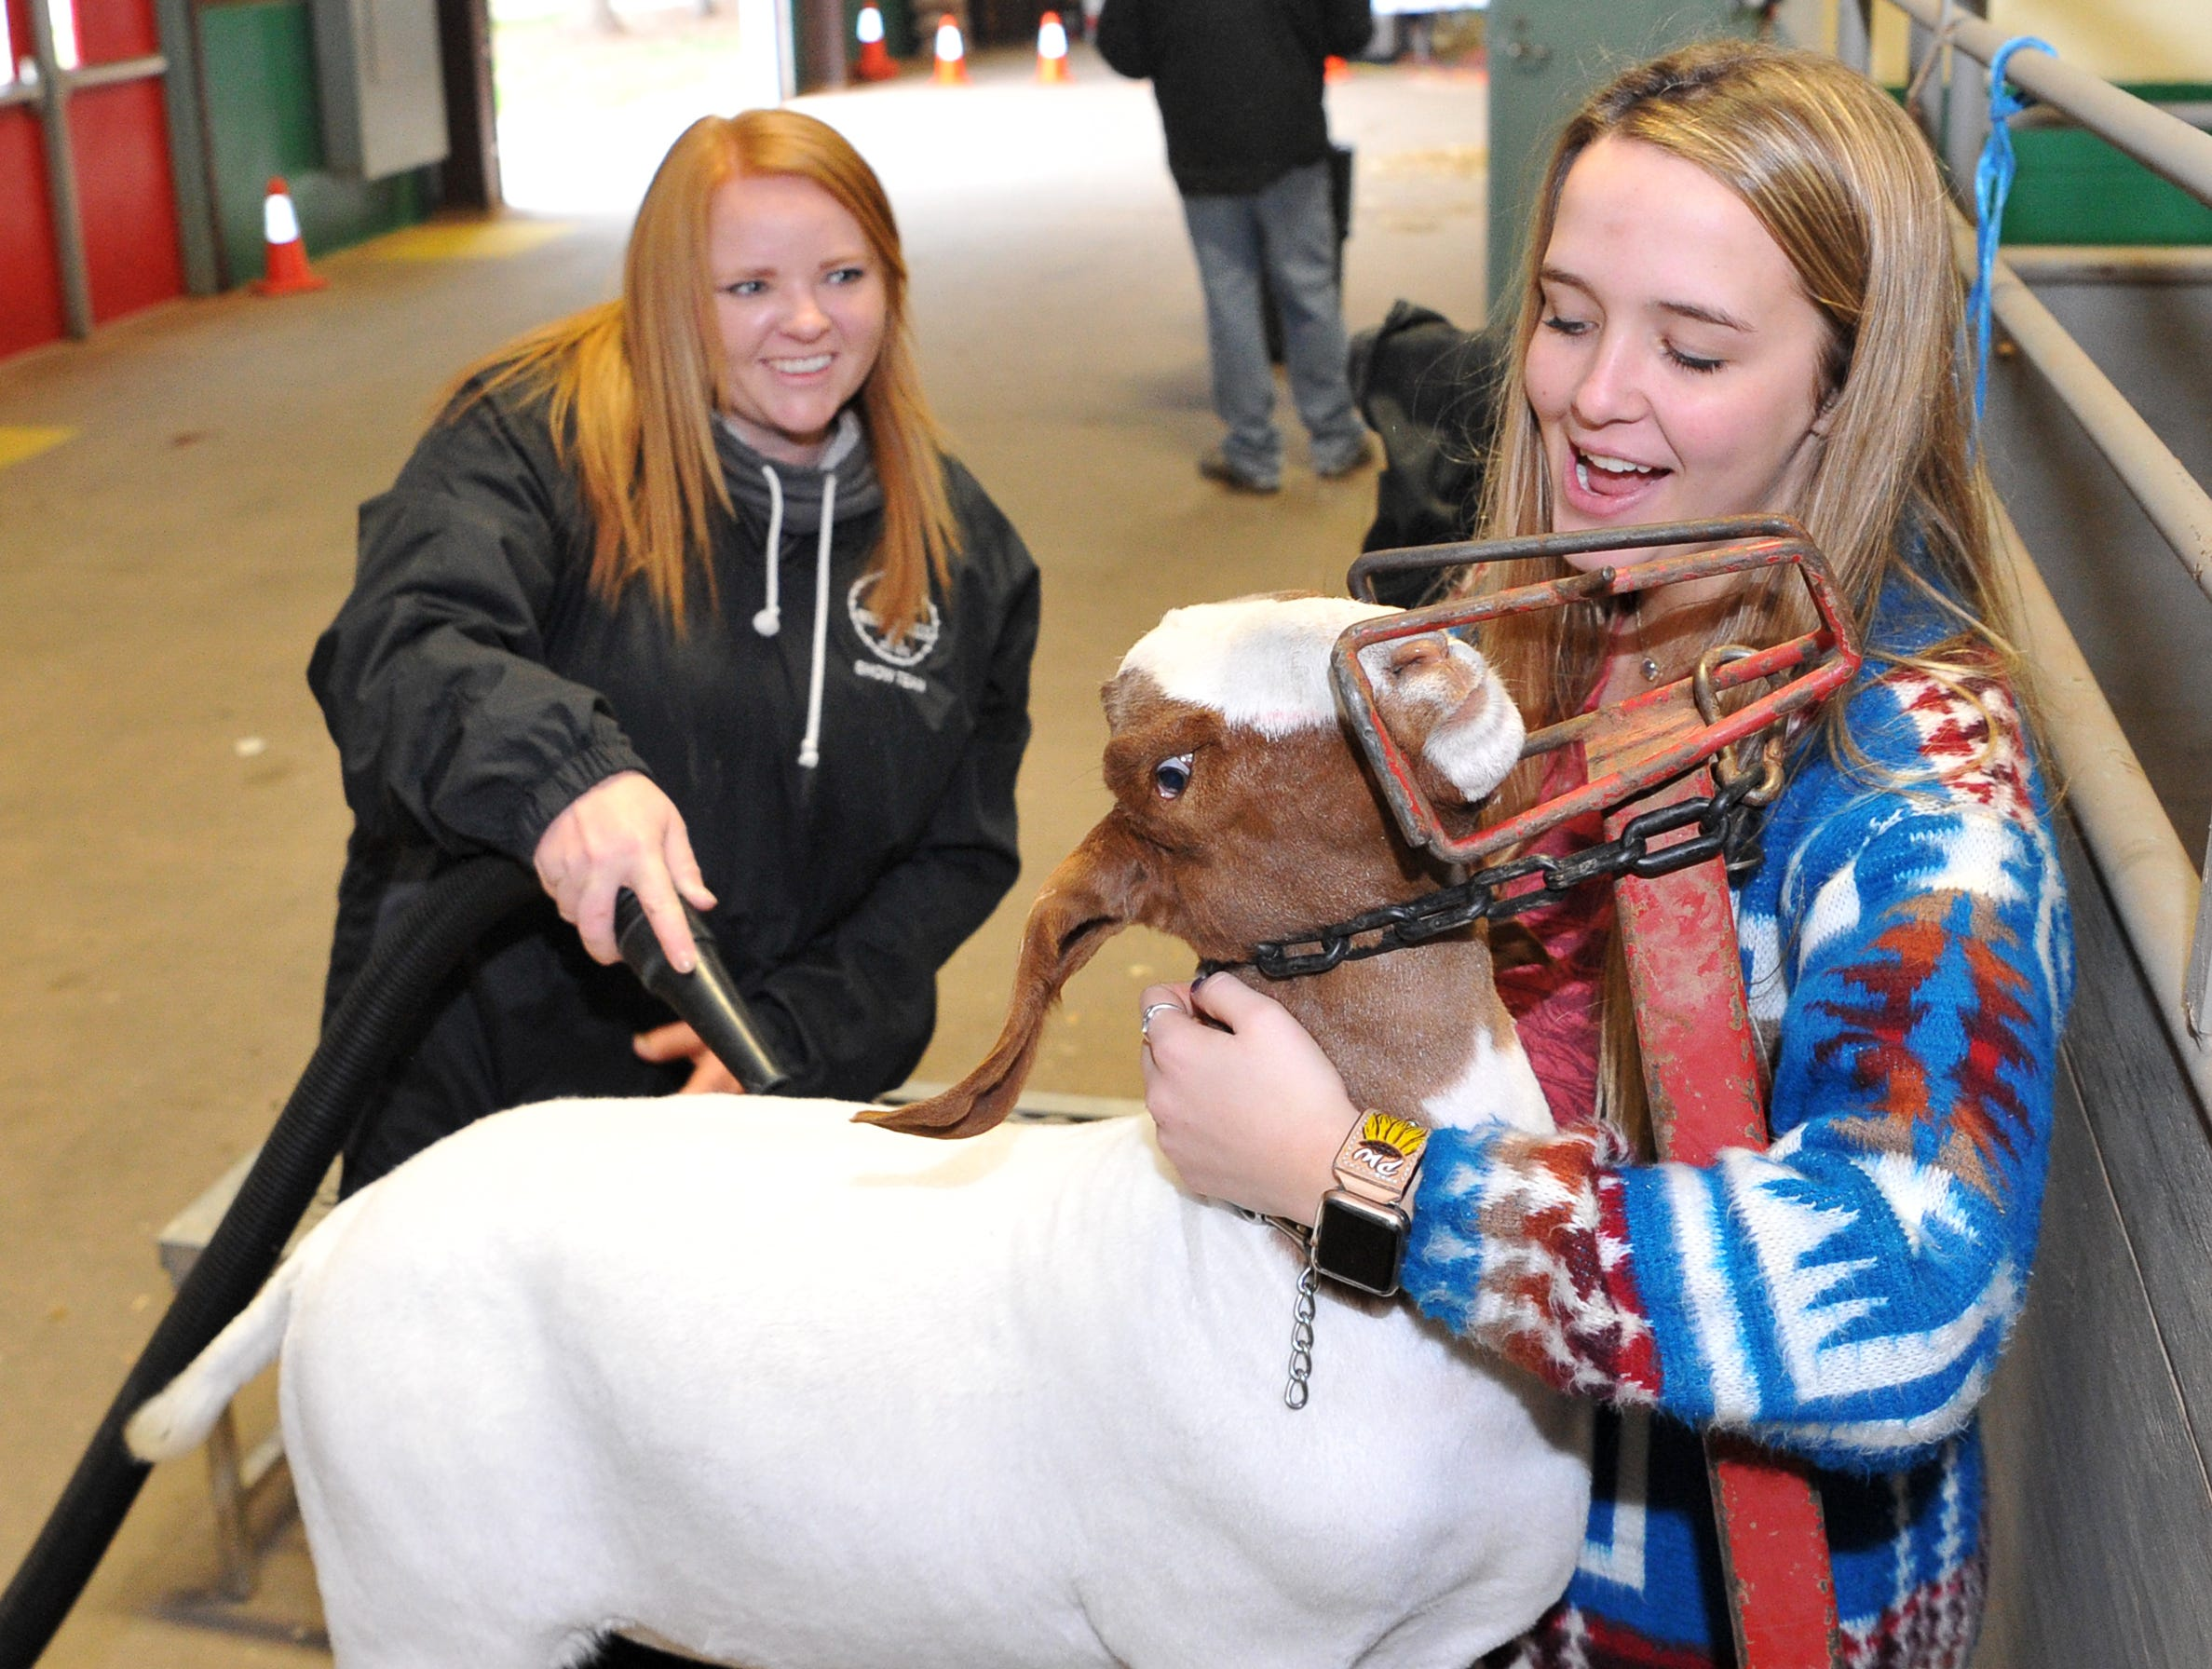 Peyton Wood, right, helps calm Luigi the goat while Amber West grooms her for show during the Wichita County Junior Livestock Show.